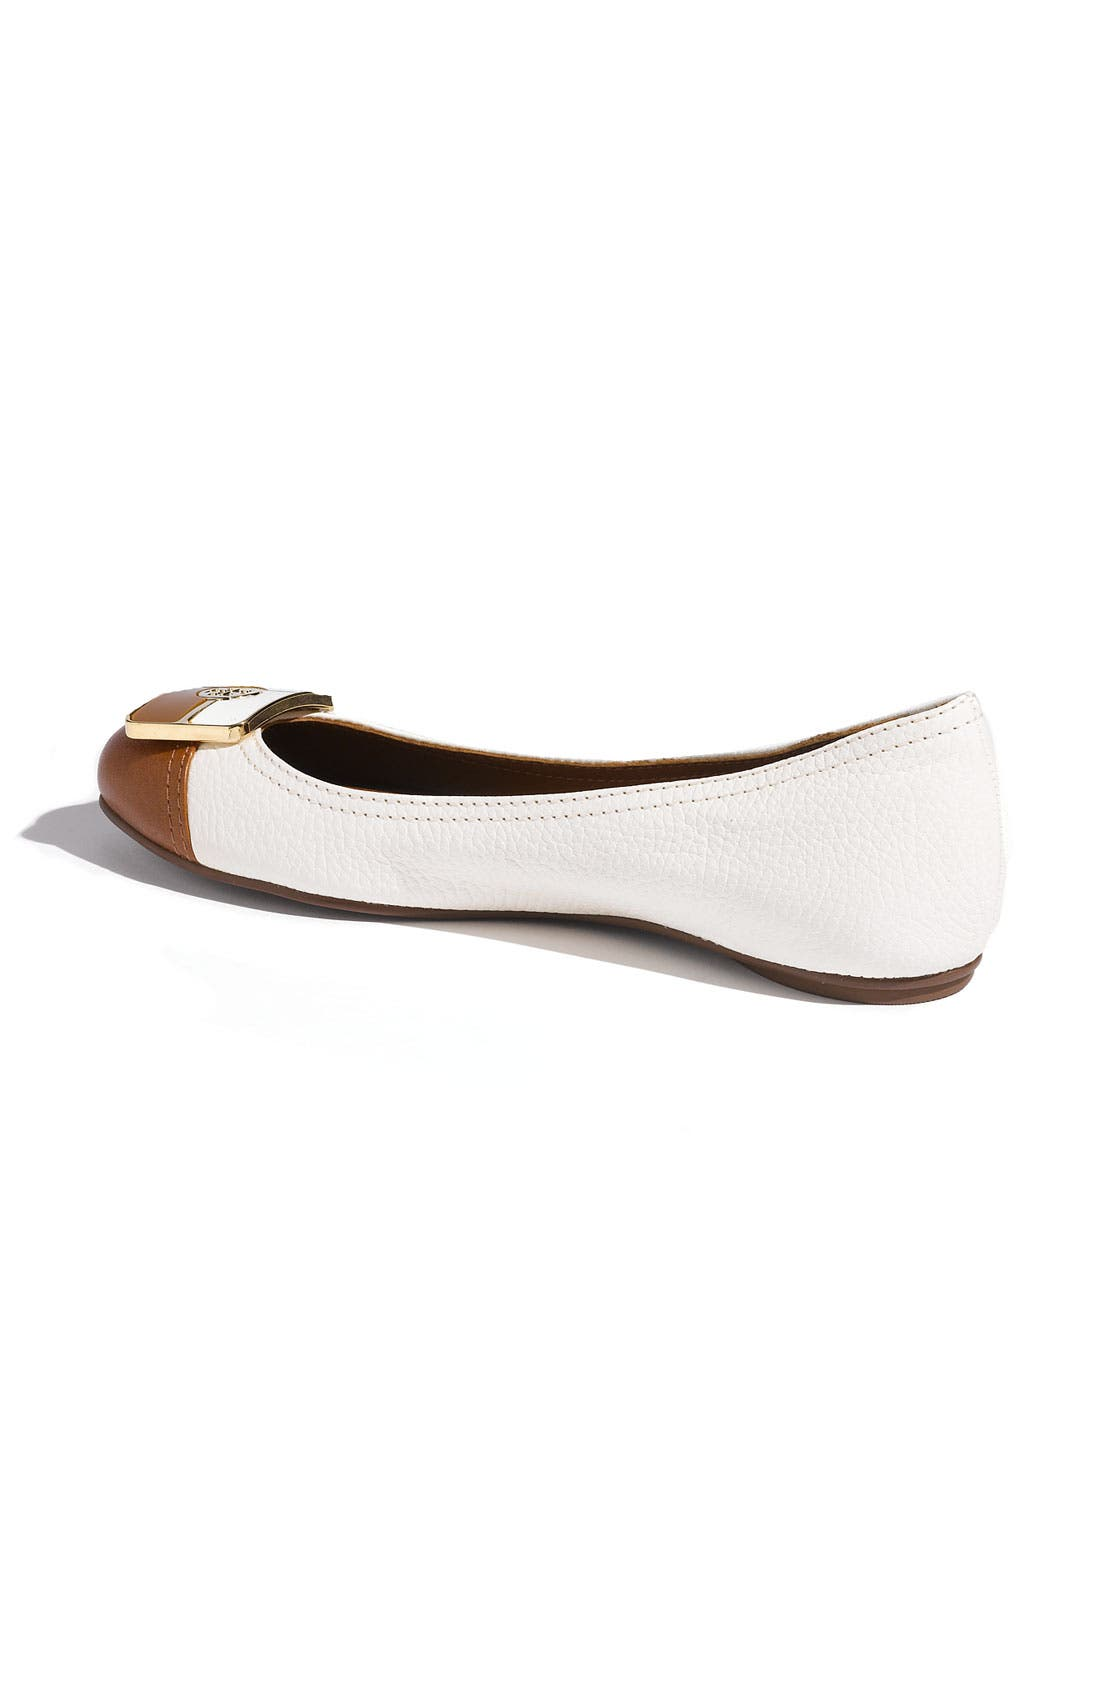 Alternate Image 2  - Tory Burch 'Colette' Ballet Flat